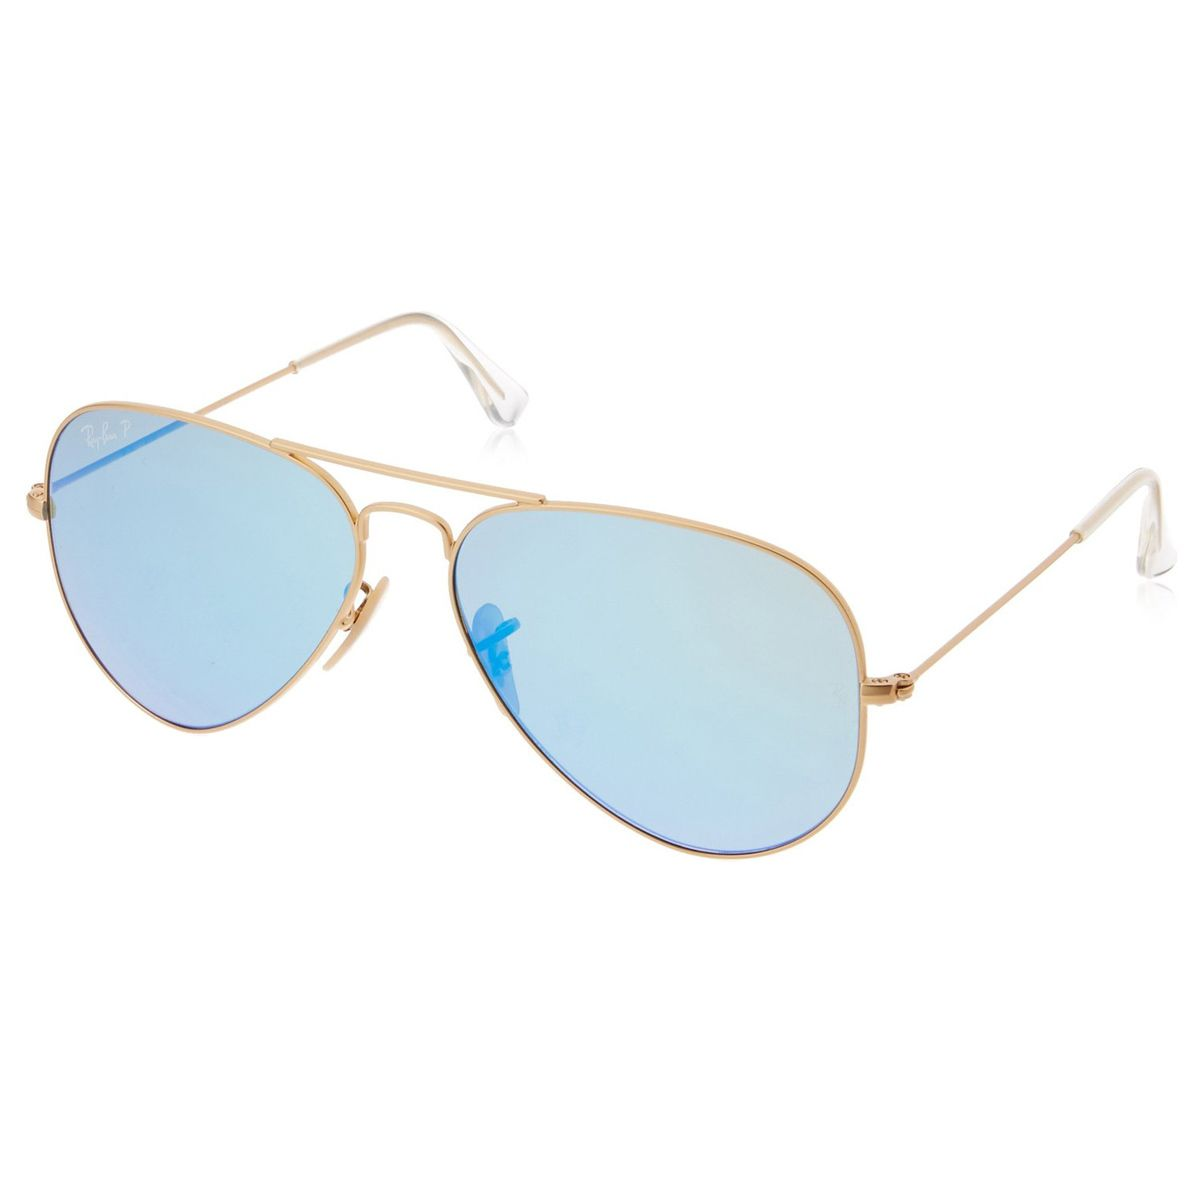 44d0dd01e0 Ray-Ban RB 3025 112-4L 58 Unisex Aviator Gold Metal Frame Polarized Blue  Flash Lenses Sunglass - Discount Watch Store